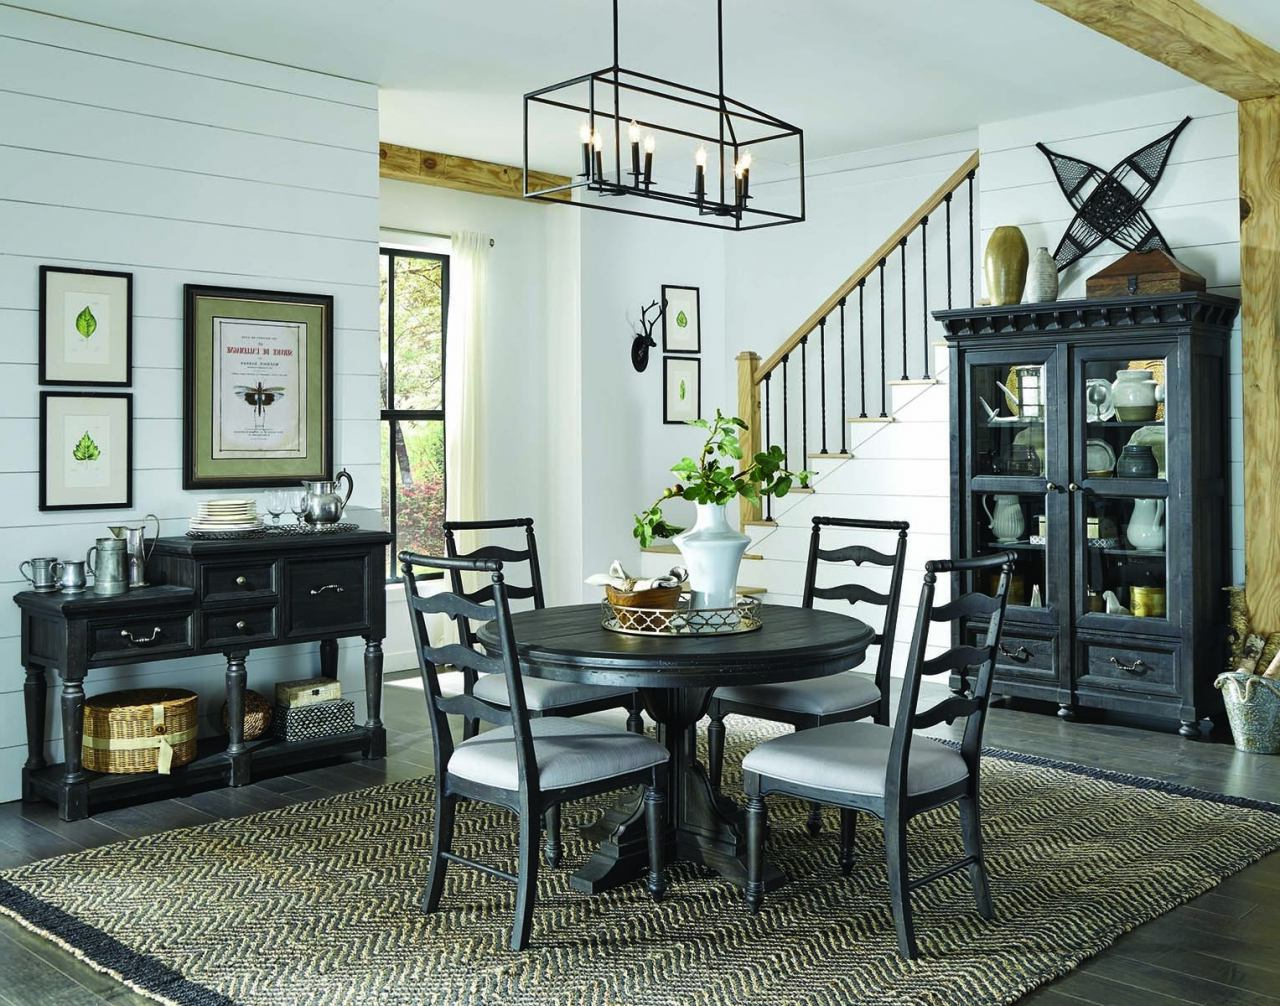 Bedfo 3 Piece Dining Sets With Widely Used Magnussen Furniture Bedford Corners 5Pc Round Dining Set In Anvil Black (Gallery 10 of 20)